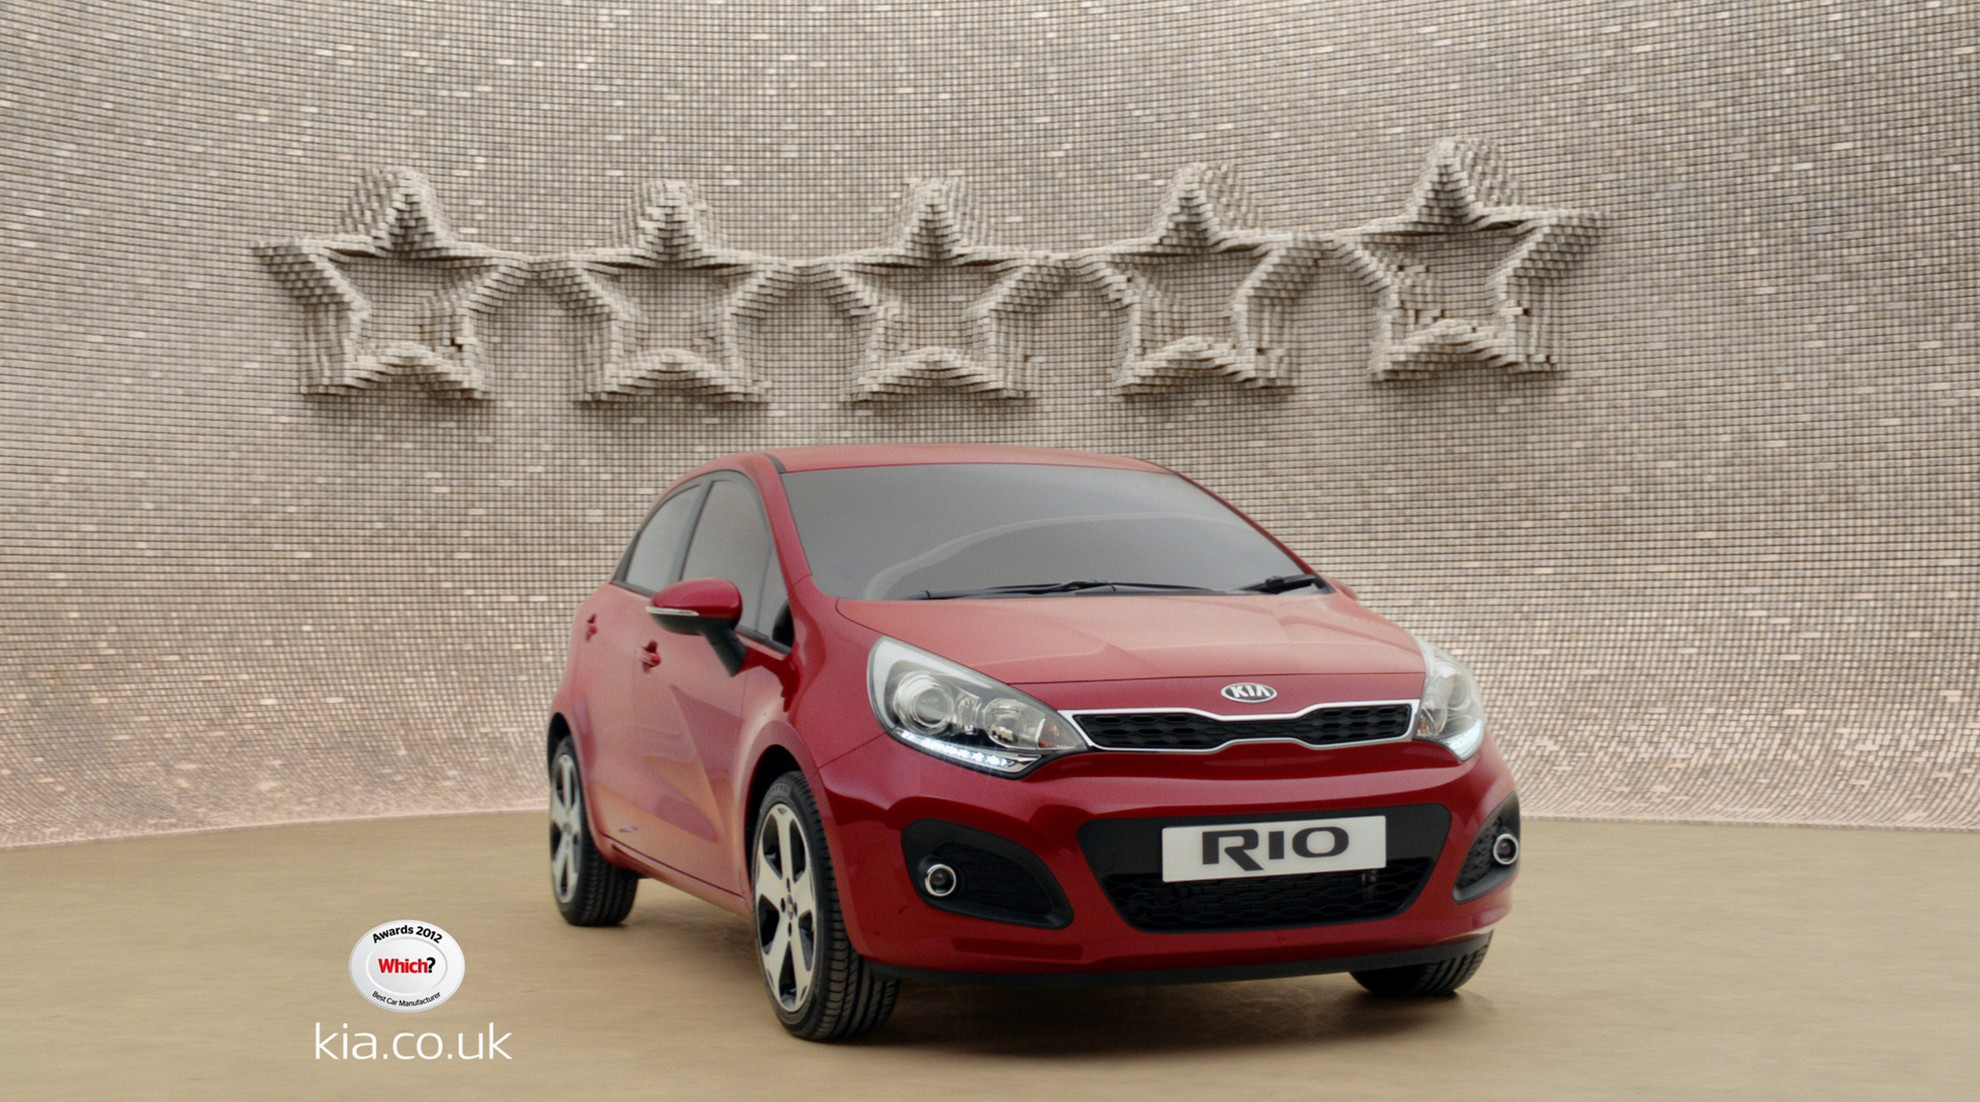 Kia United Kingdom